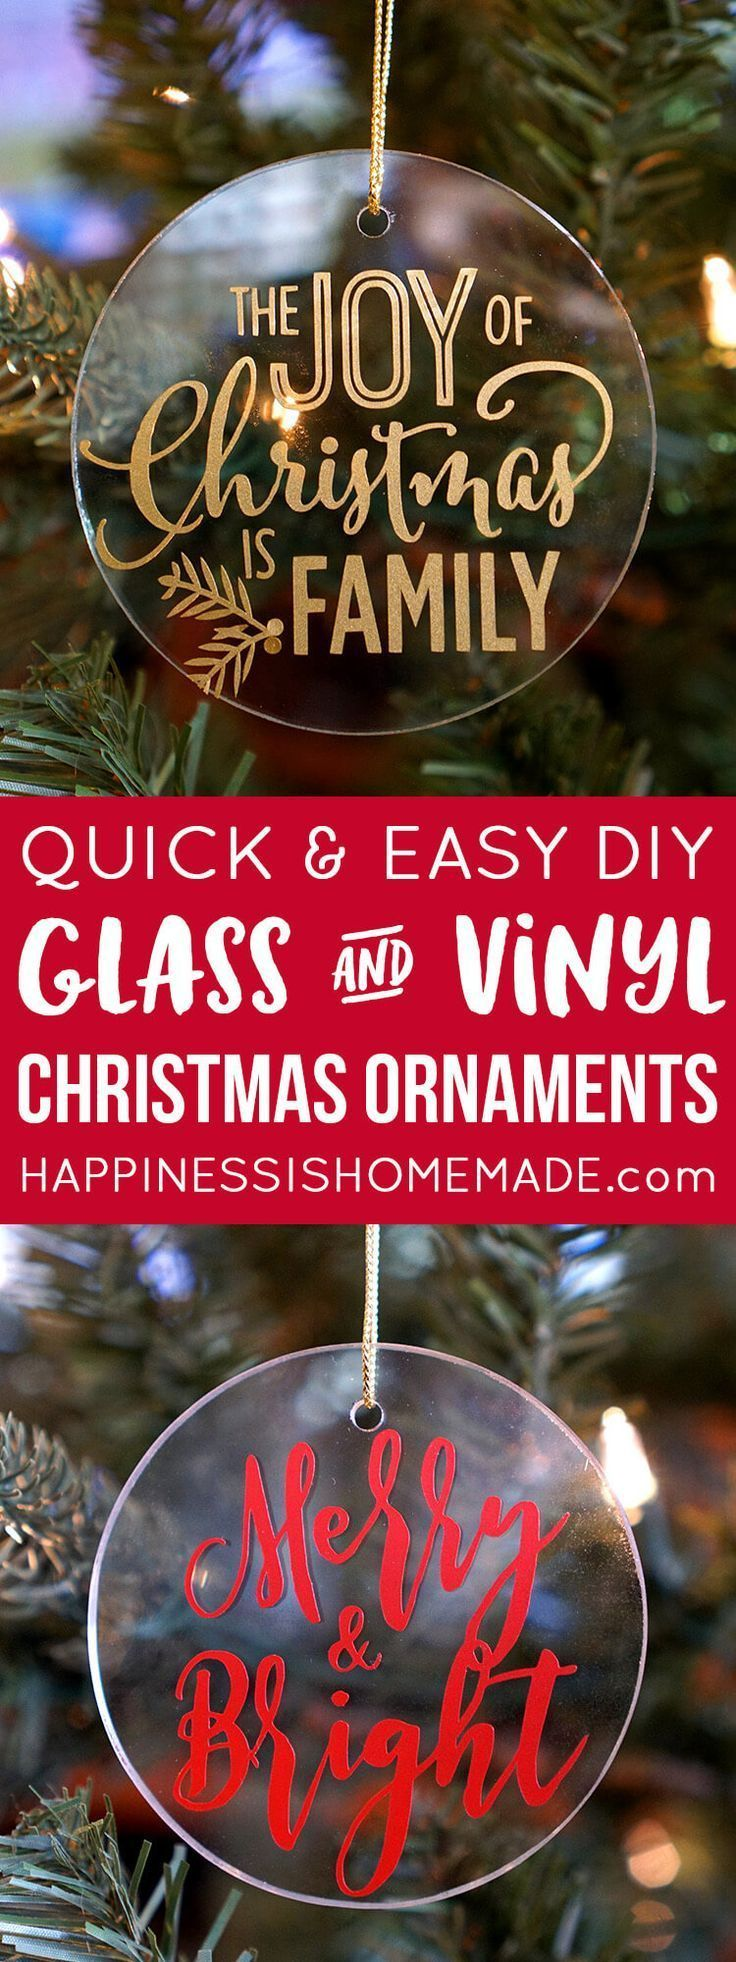 Quick and Easy DIY Glass and Vinyl Christmas Ornaments ...